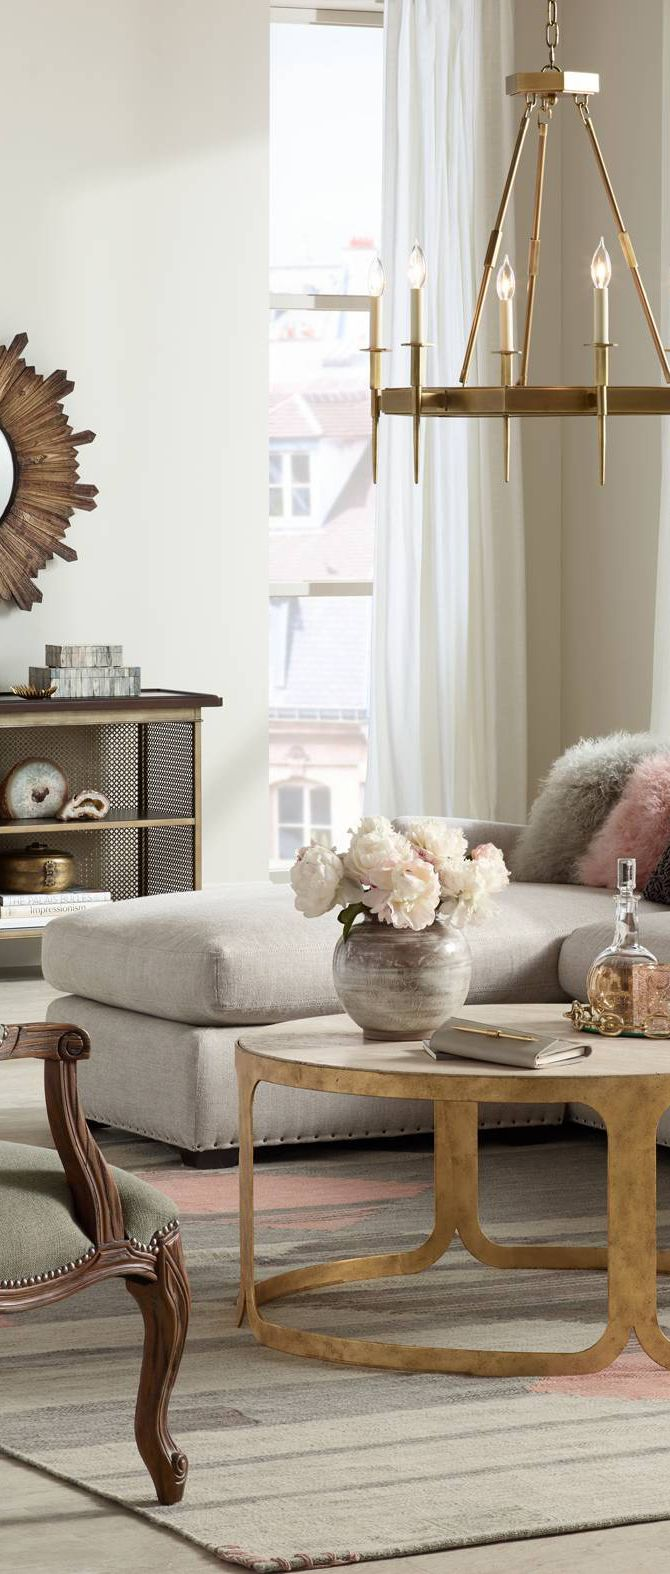 CASUAL ELEGANCE: Casual Elegance Truly Is A Mix Between The Formal And The  Informal. To Achieve The Look, Center The Room Around A Casual Sofa, ...